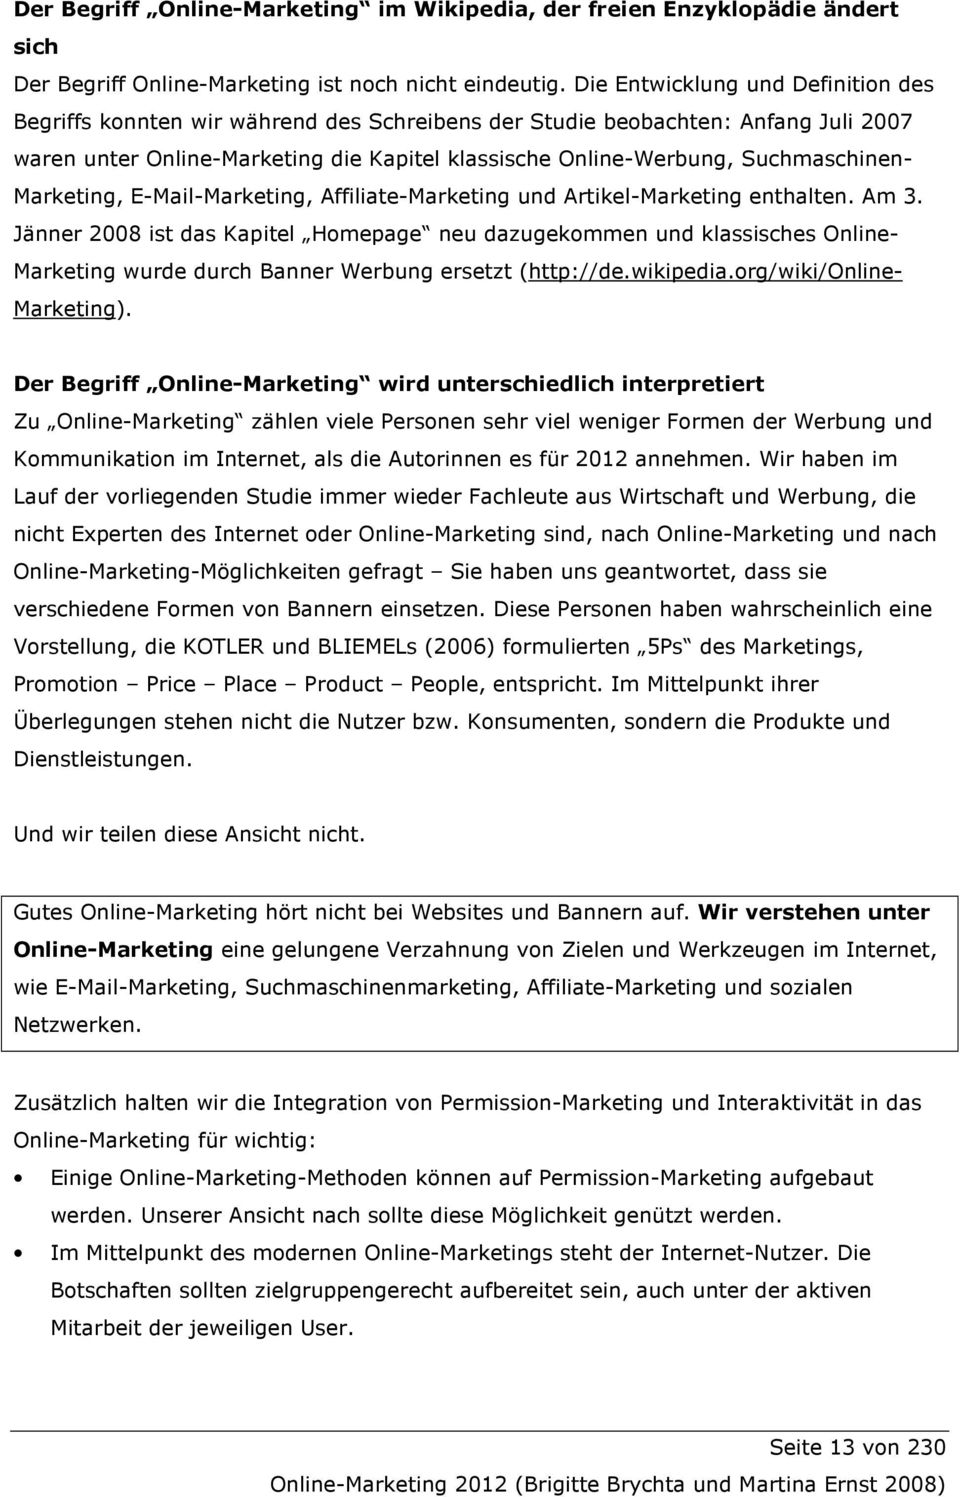 Suchmaschinen- Marketing, E-Mail-Marketing, Affiliate-Marketing und Artikel-Marketing enthalten. Am 3.